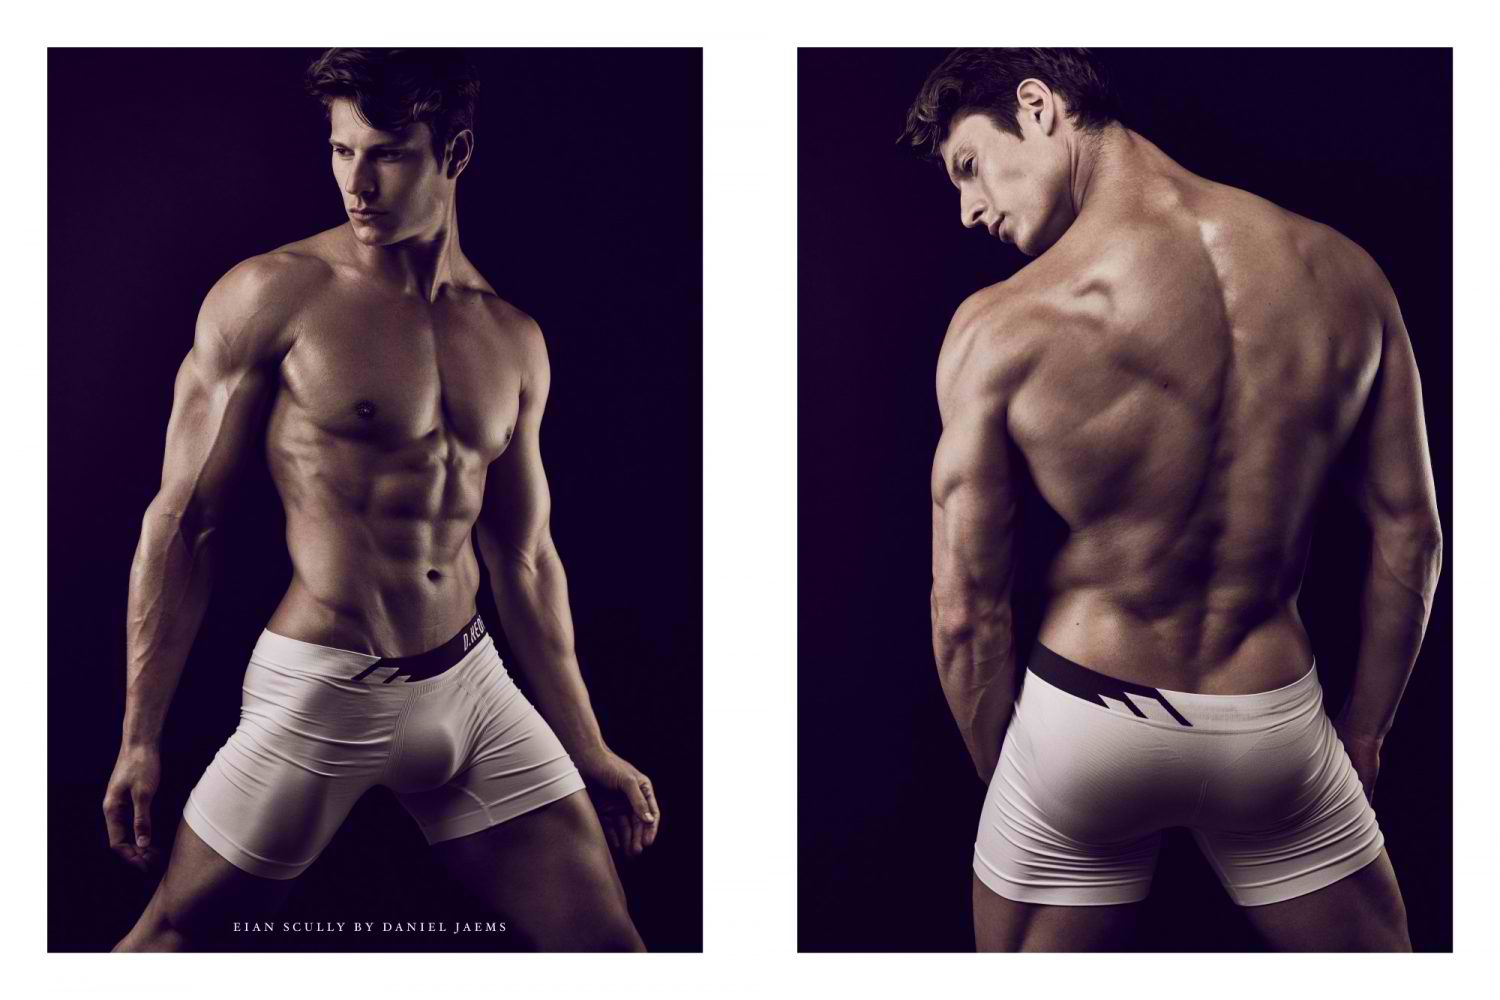 Eian-Scully-by-Daniel-Jaems-Obsession-No17-012-1500x1000 (1)